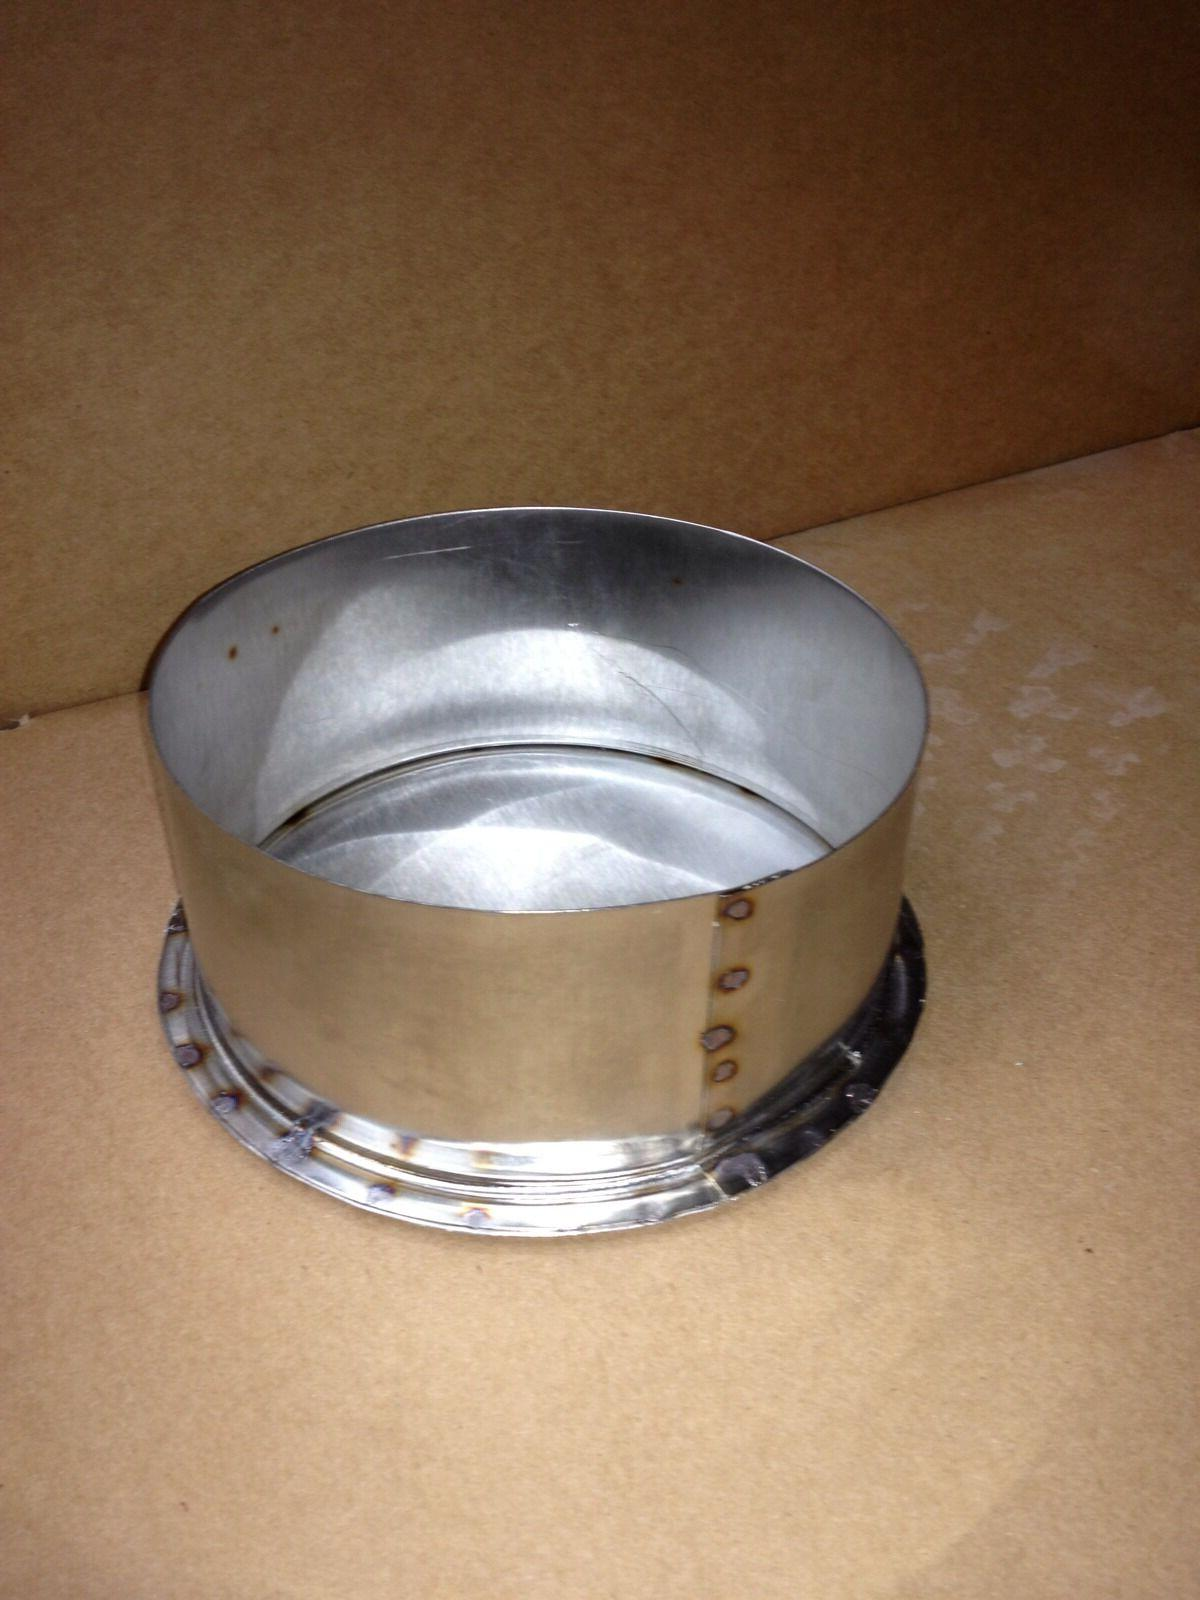 6 inch stainless steel stove pipe tee